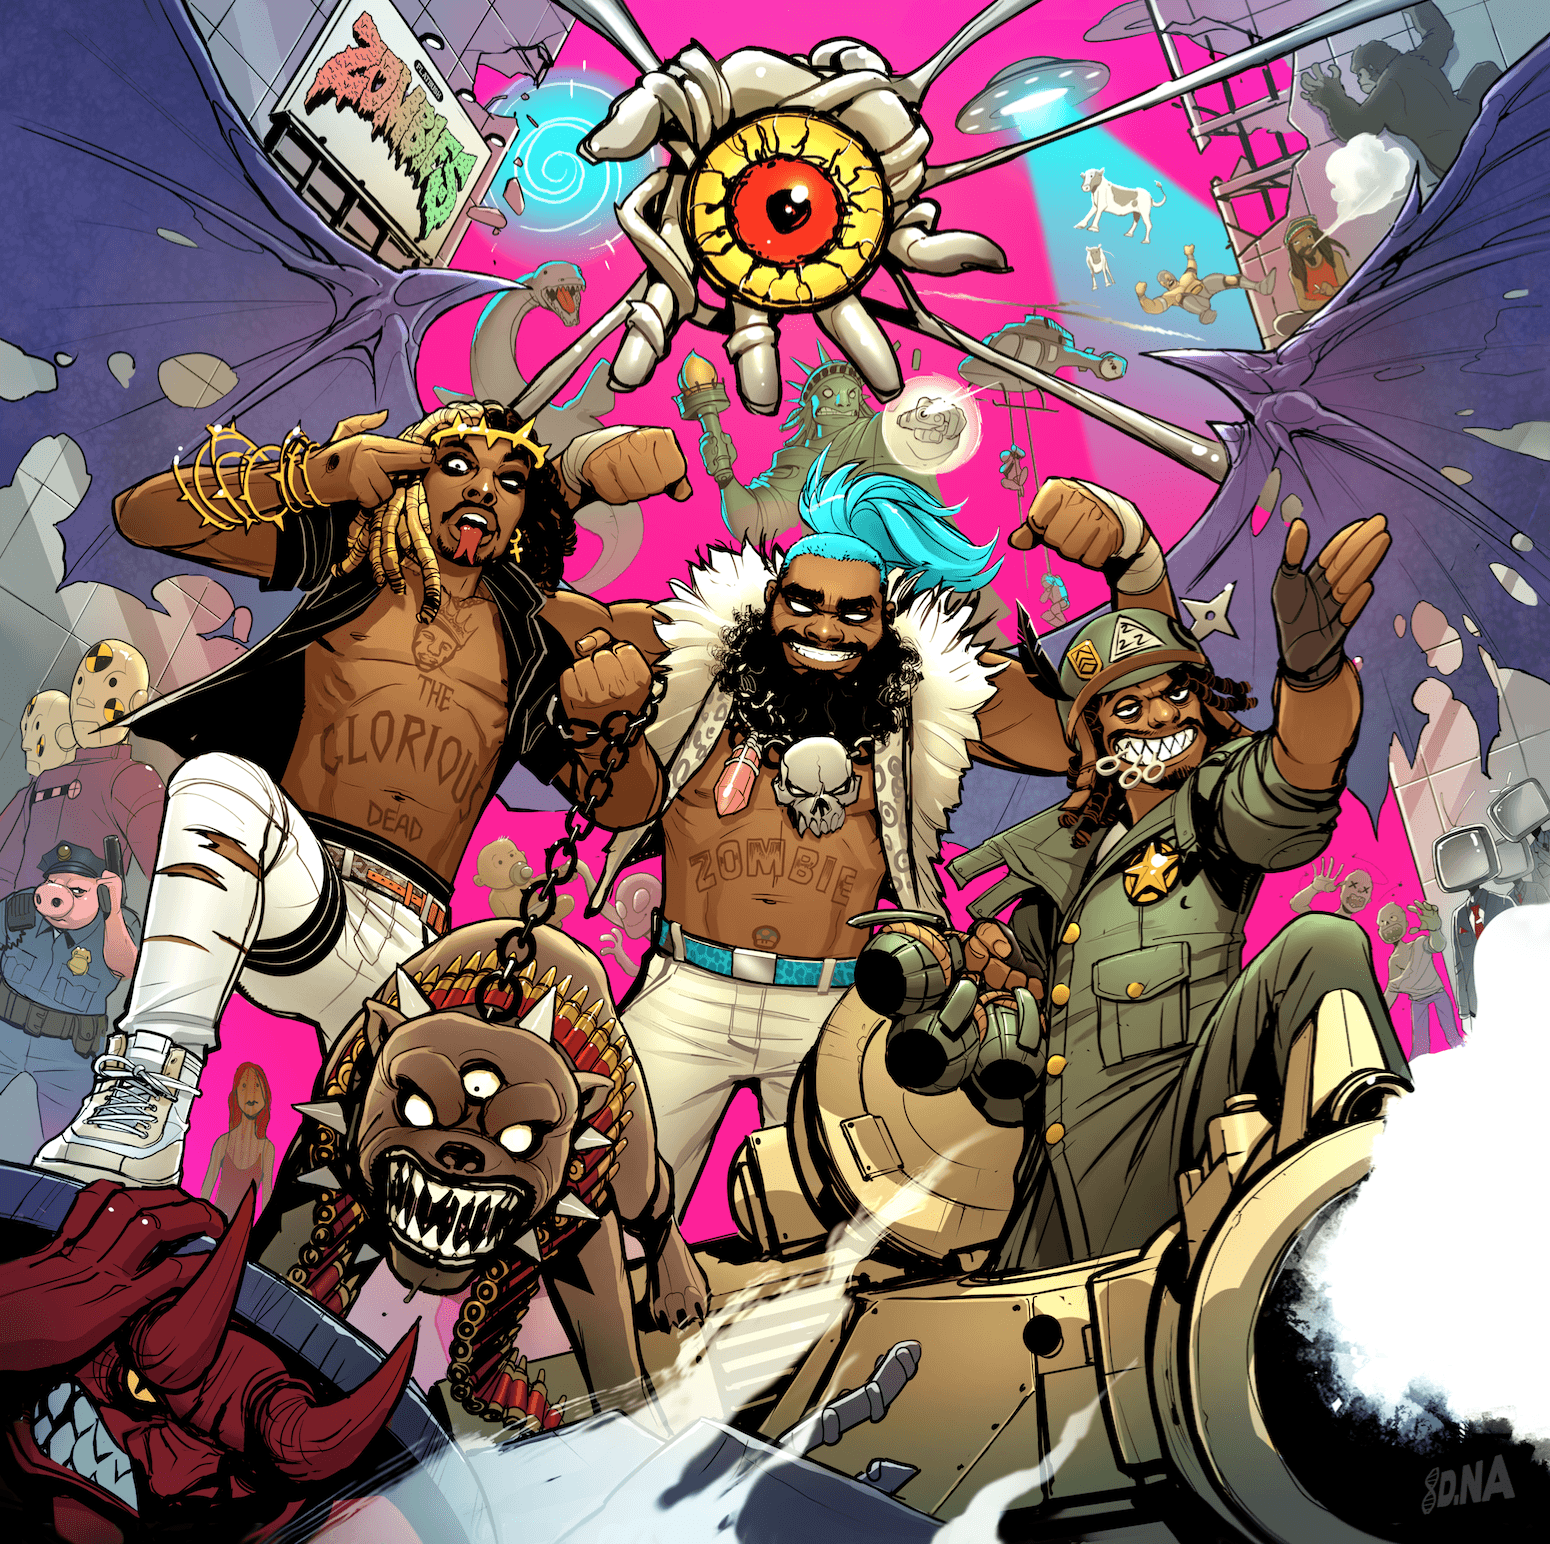 1550x1544 Flatbush Zombies Wallpaper - Unique FHDQ Backgrounds 2018